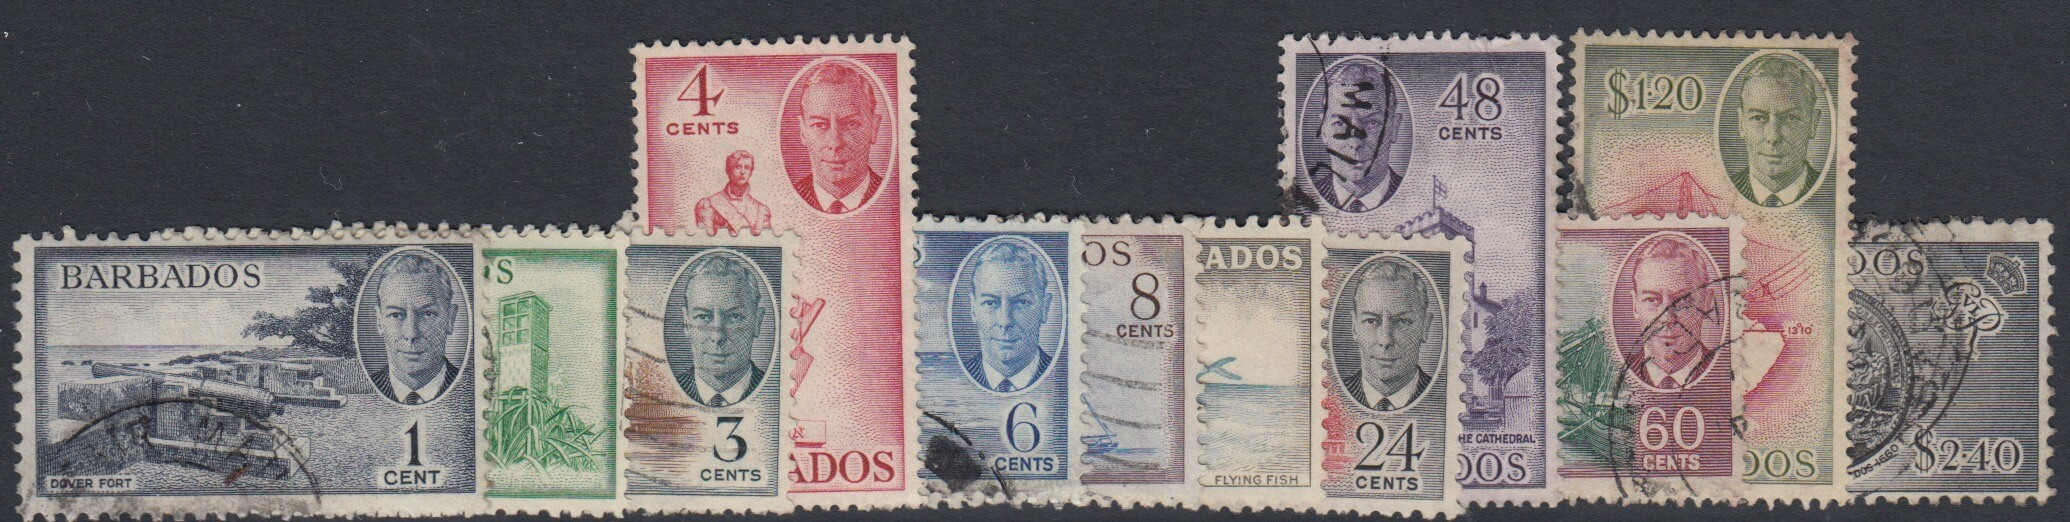 Barbados SG 271-282 | George VI definitives